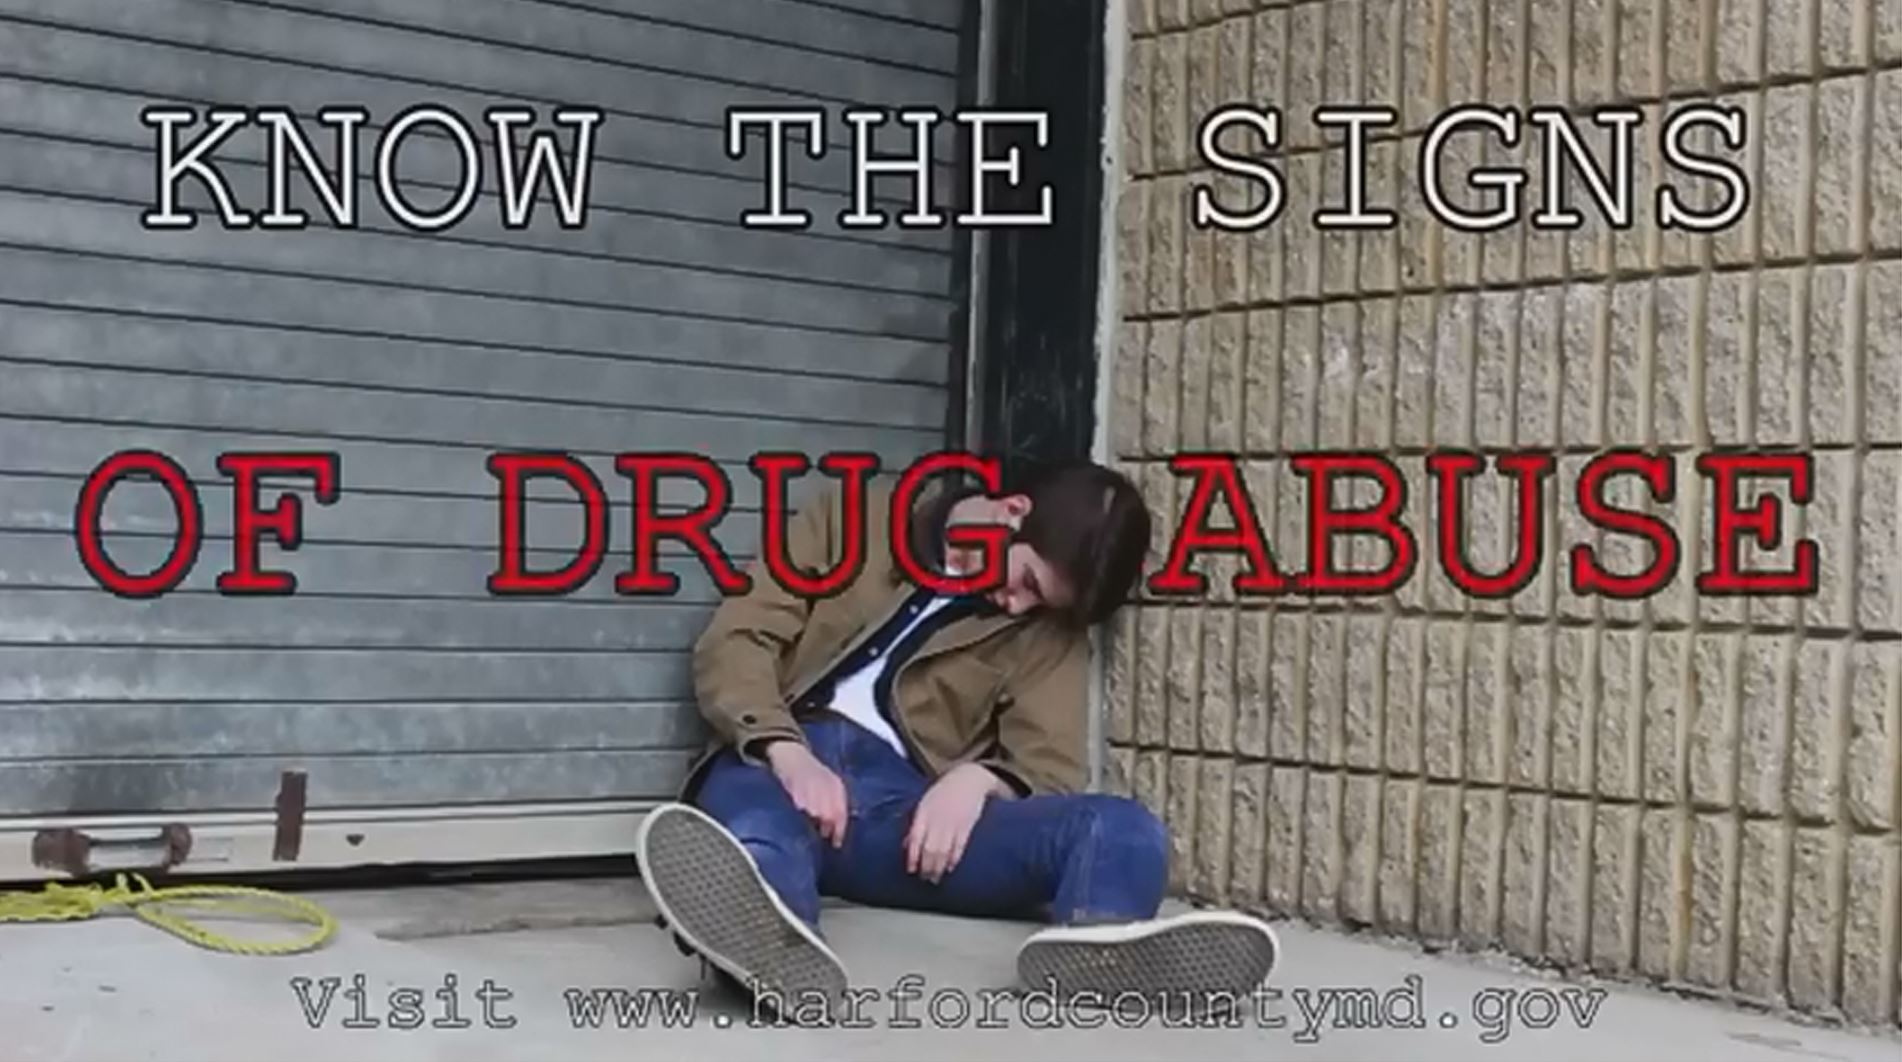 Know the Signs of Drug Abuse PSA Button